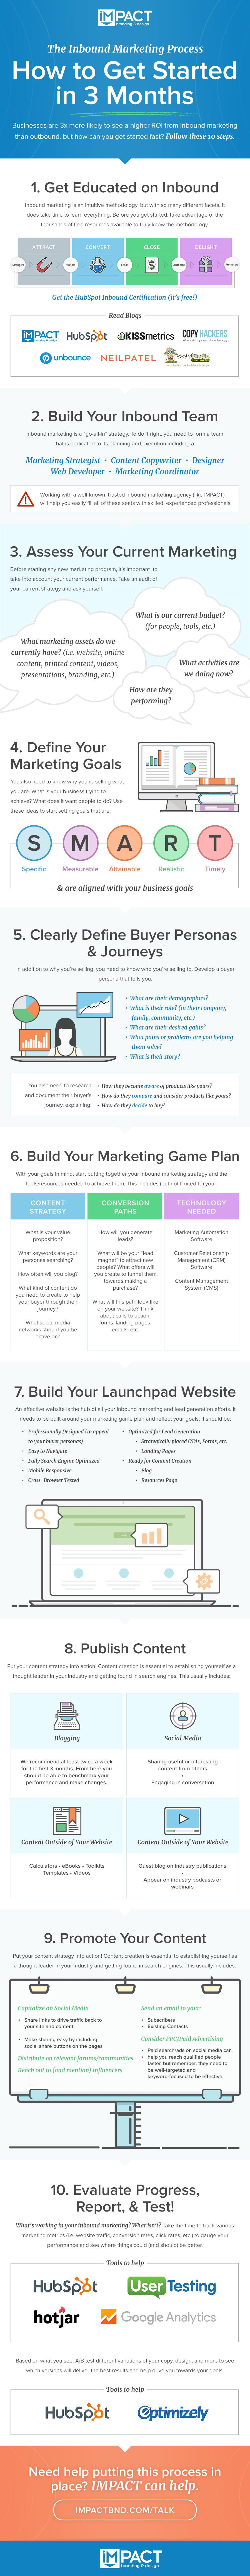 The Inbound Marketing Process: How to get Started in 3 Months